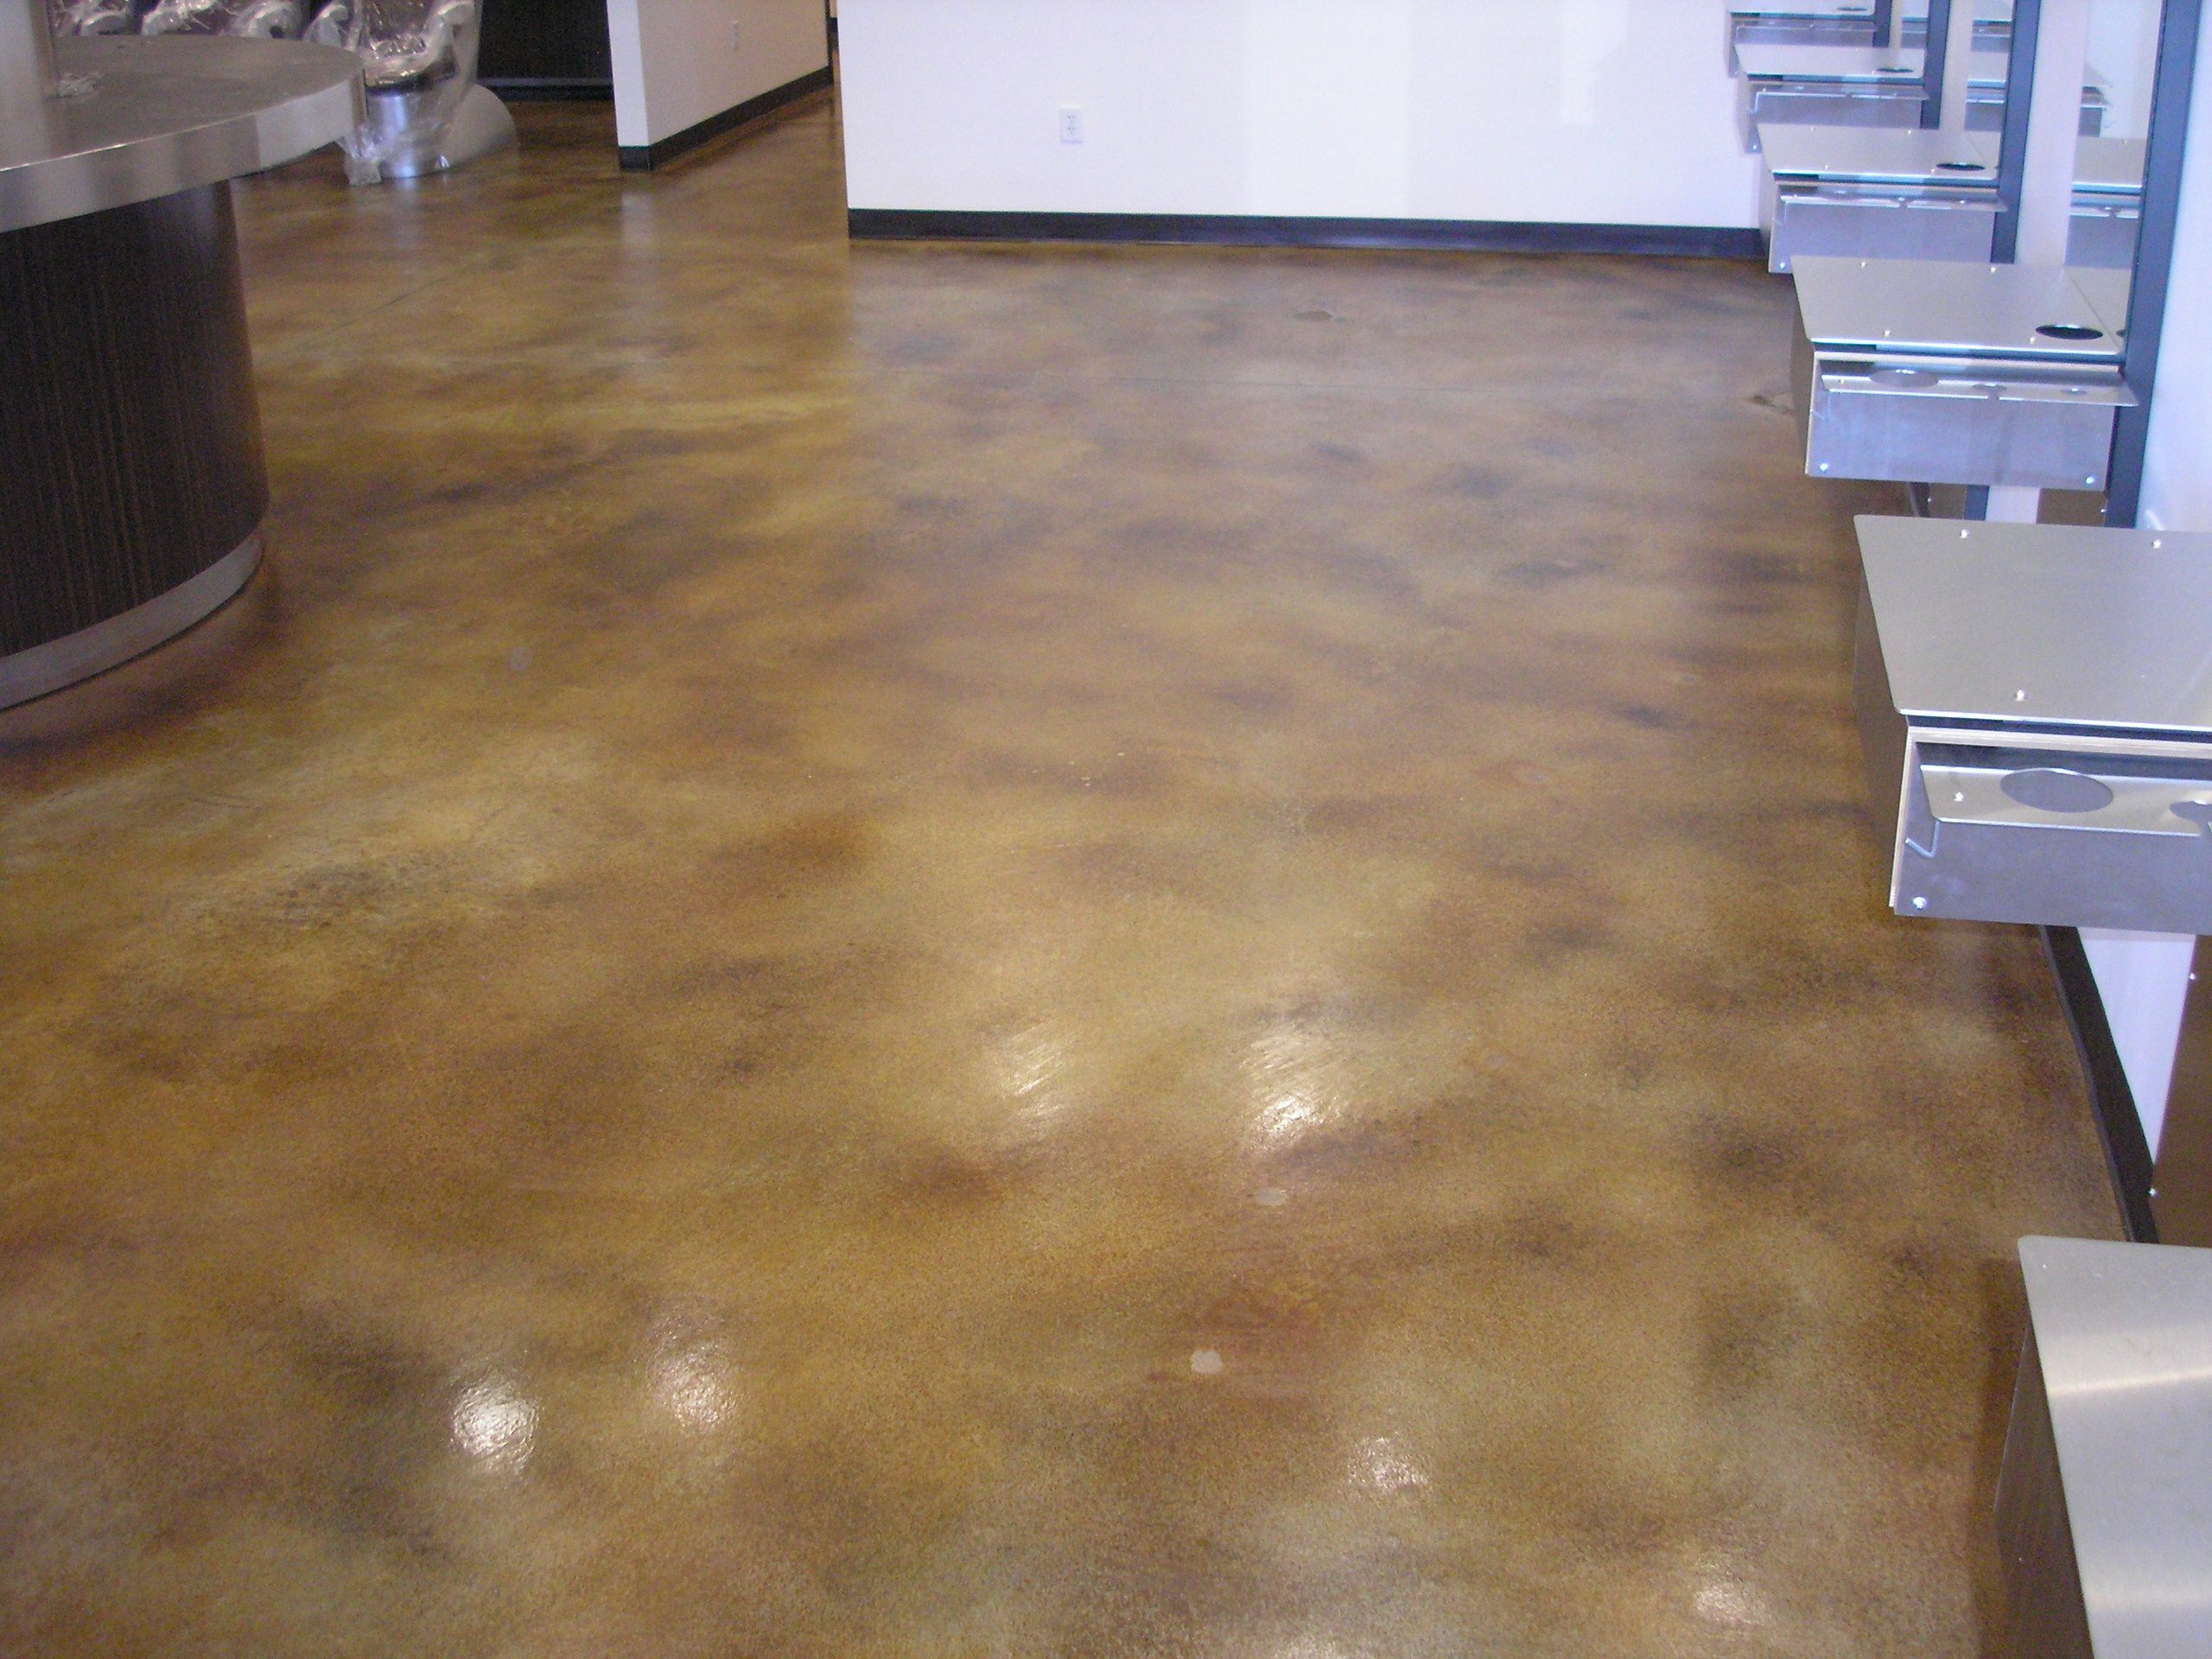 1000+ images about garage on Pinterest | Stained concrete flooring ...